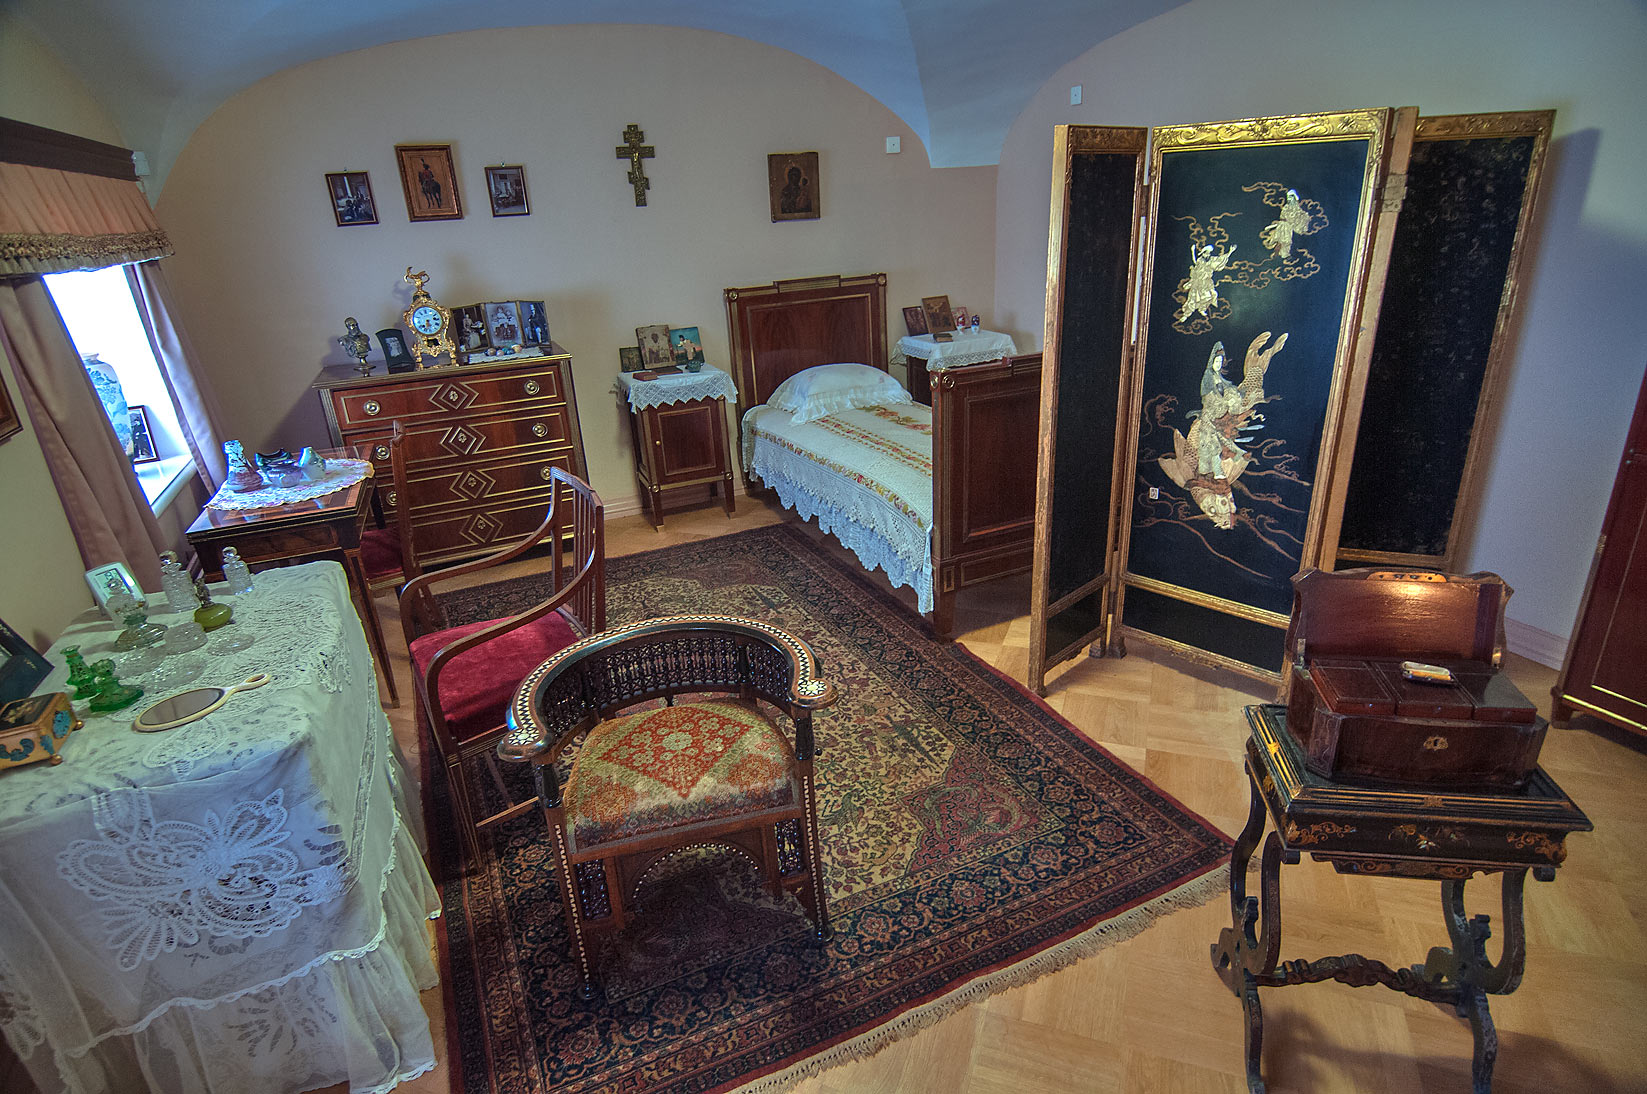 Small bedroom in Gatchina Palace. Gatchina, suburb of St.Petersburg, Russia